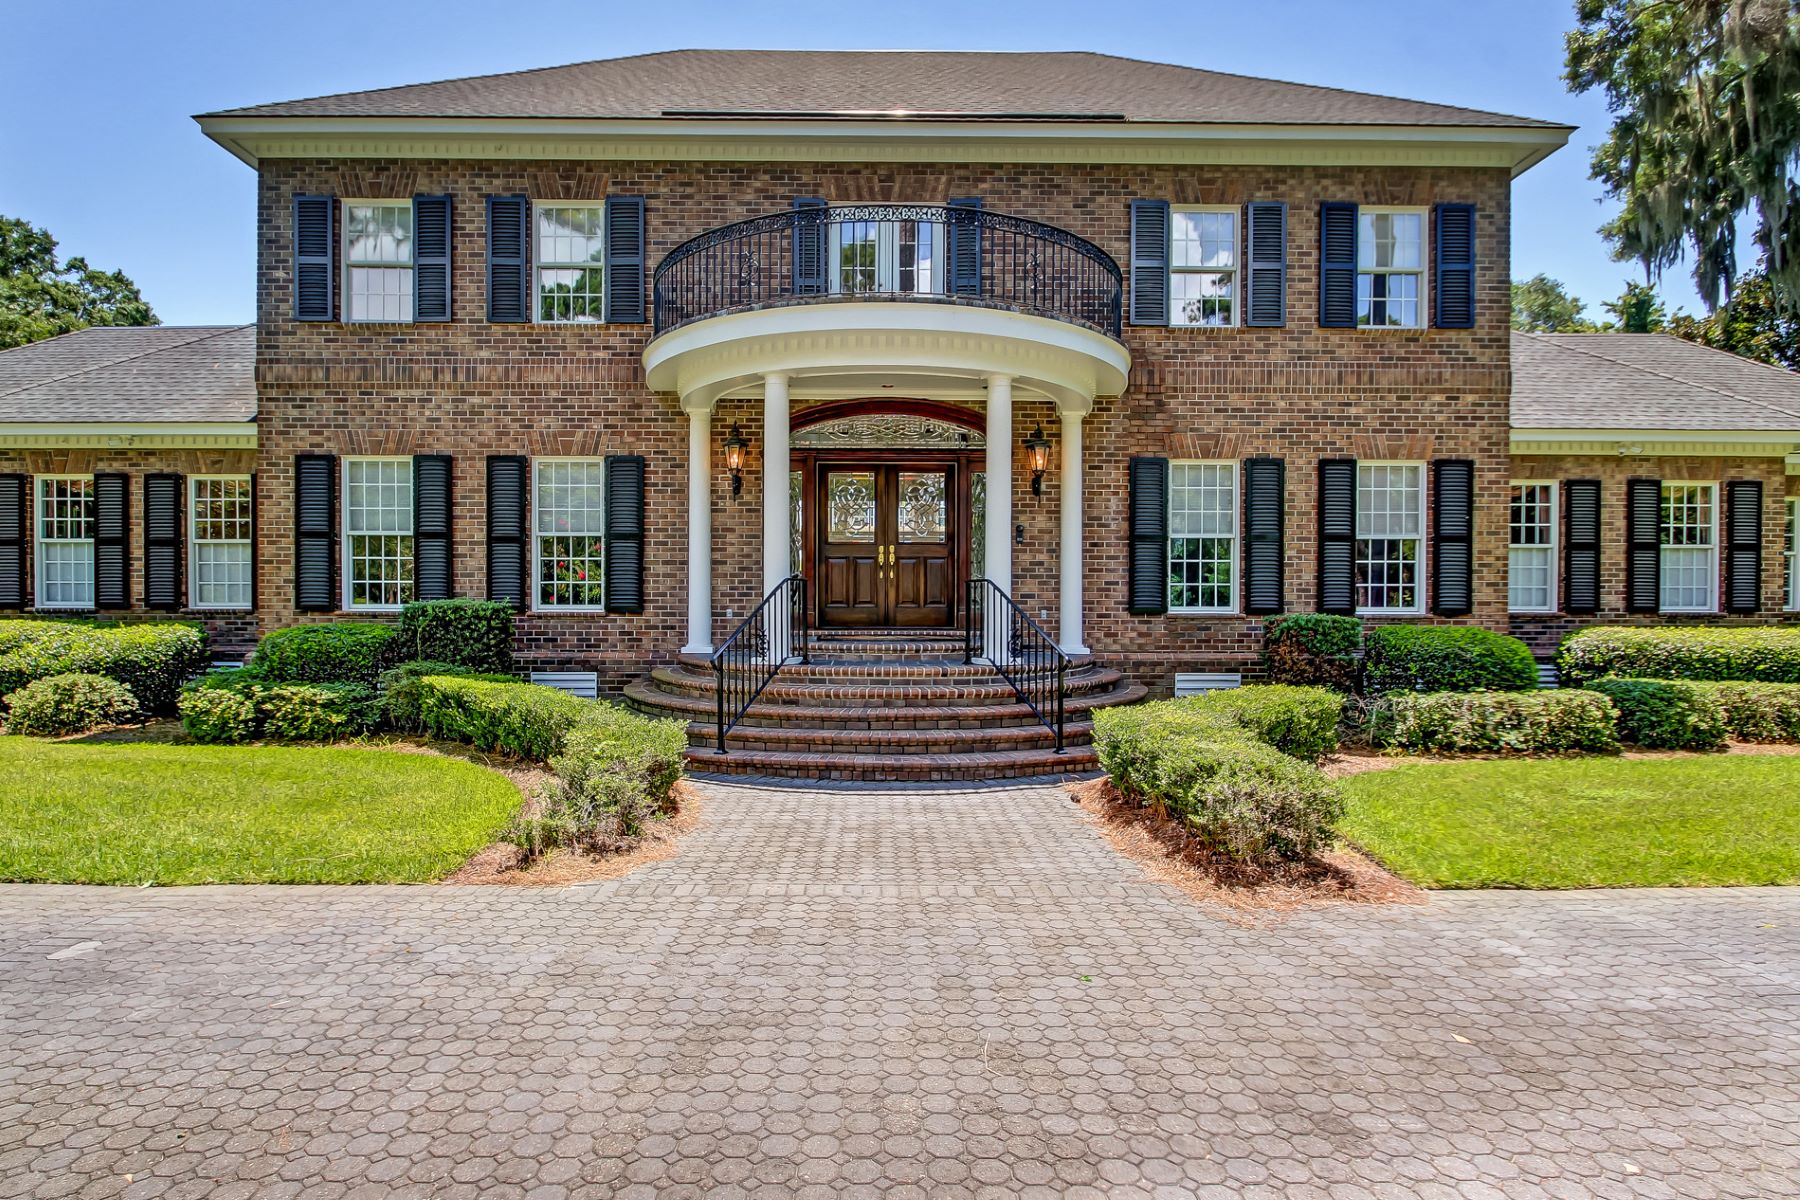 Villa per Vendita alle ore 8 Marsh Harbor Drive 8 Marsh Harbor Drive Savannah, Georgia 31410 Stati Uniti